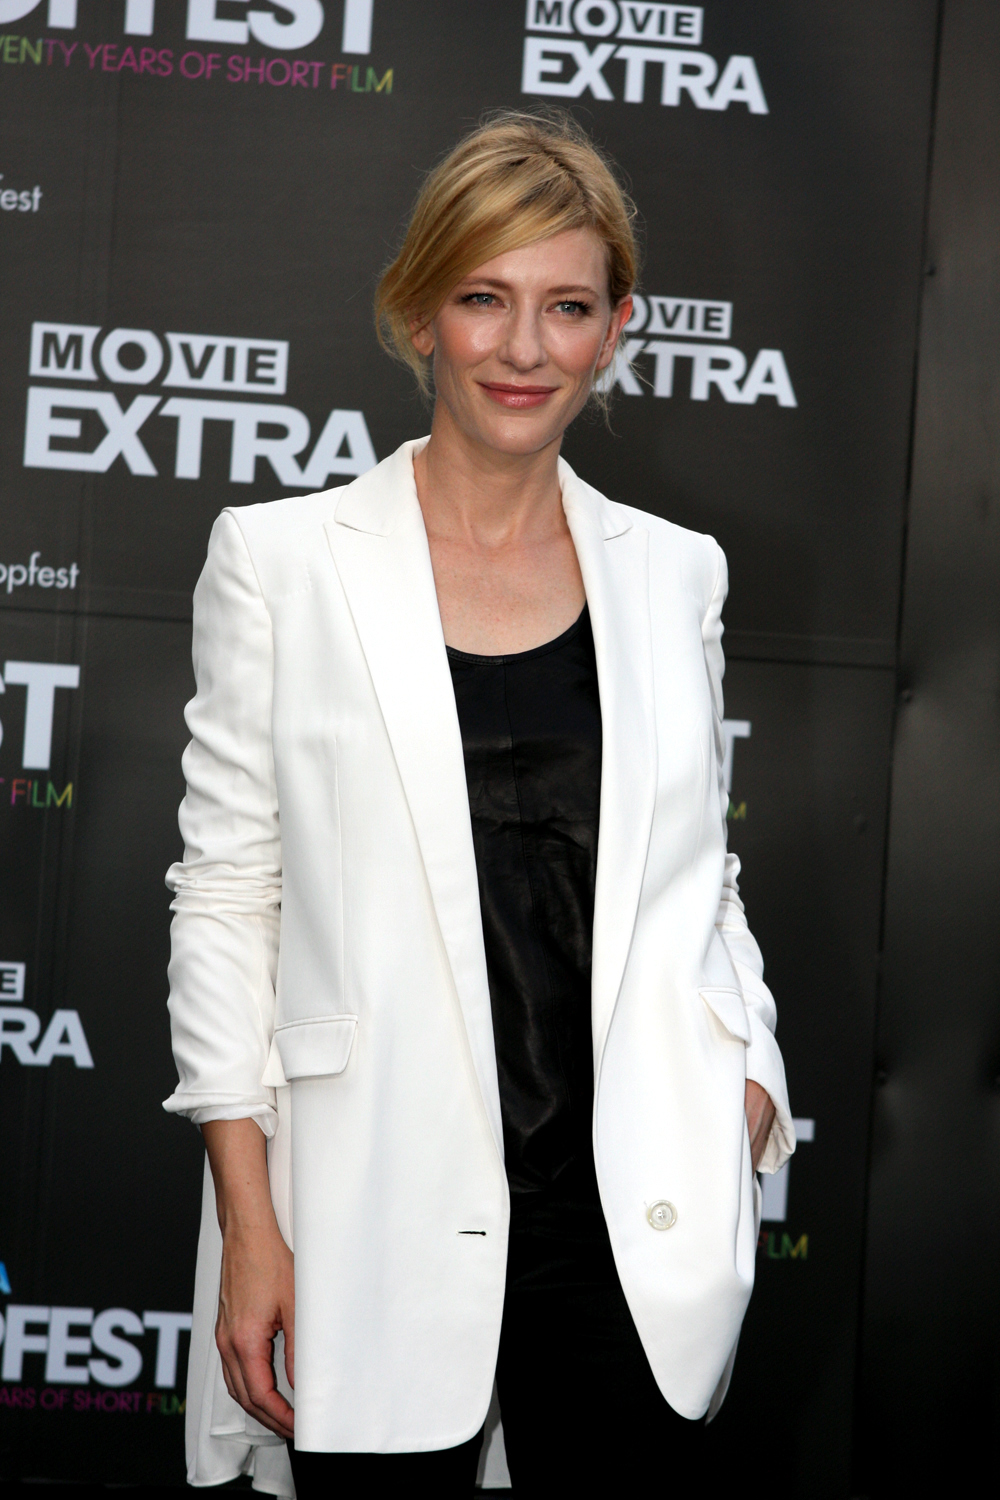 File:Cate Blanchett at the Tropfest Opens (2012) 5.jpg ... Cate Blanchett Wikipedia